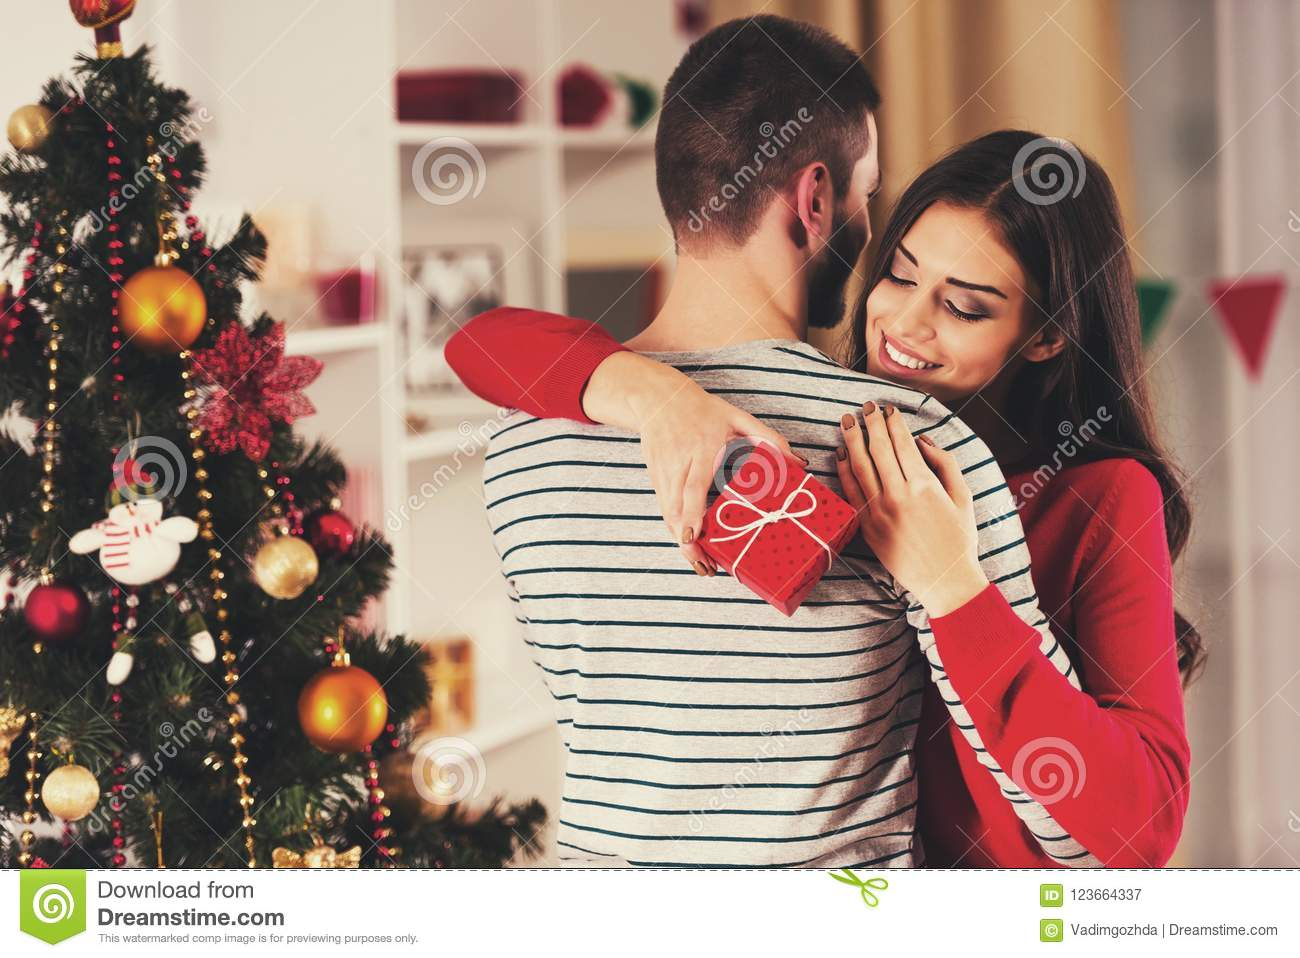 girl with red gift hugging boyfriend